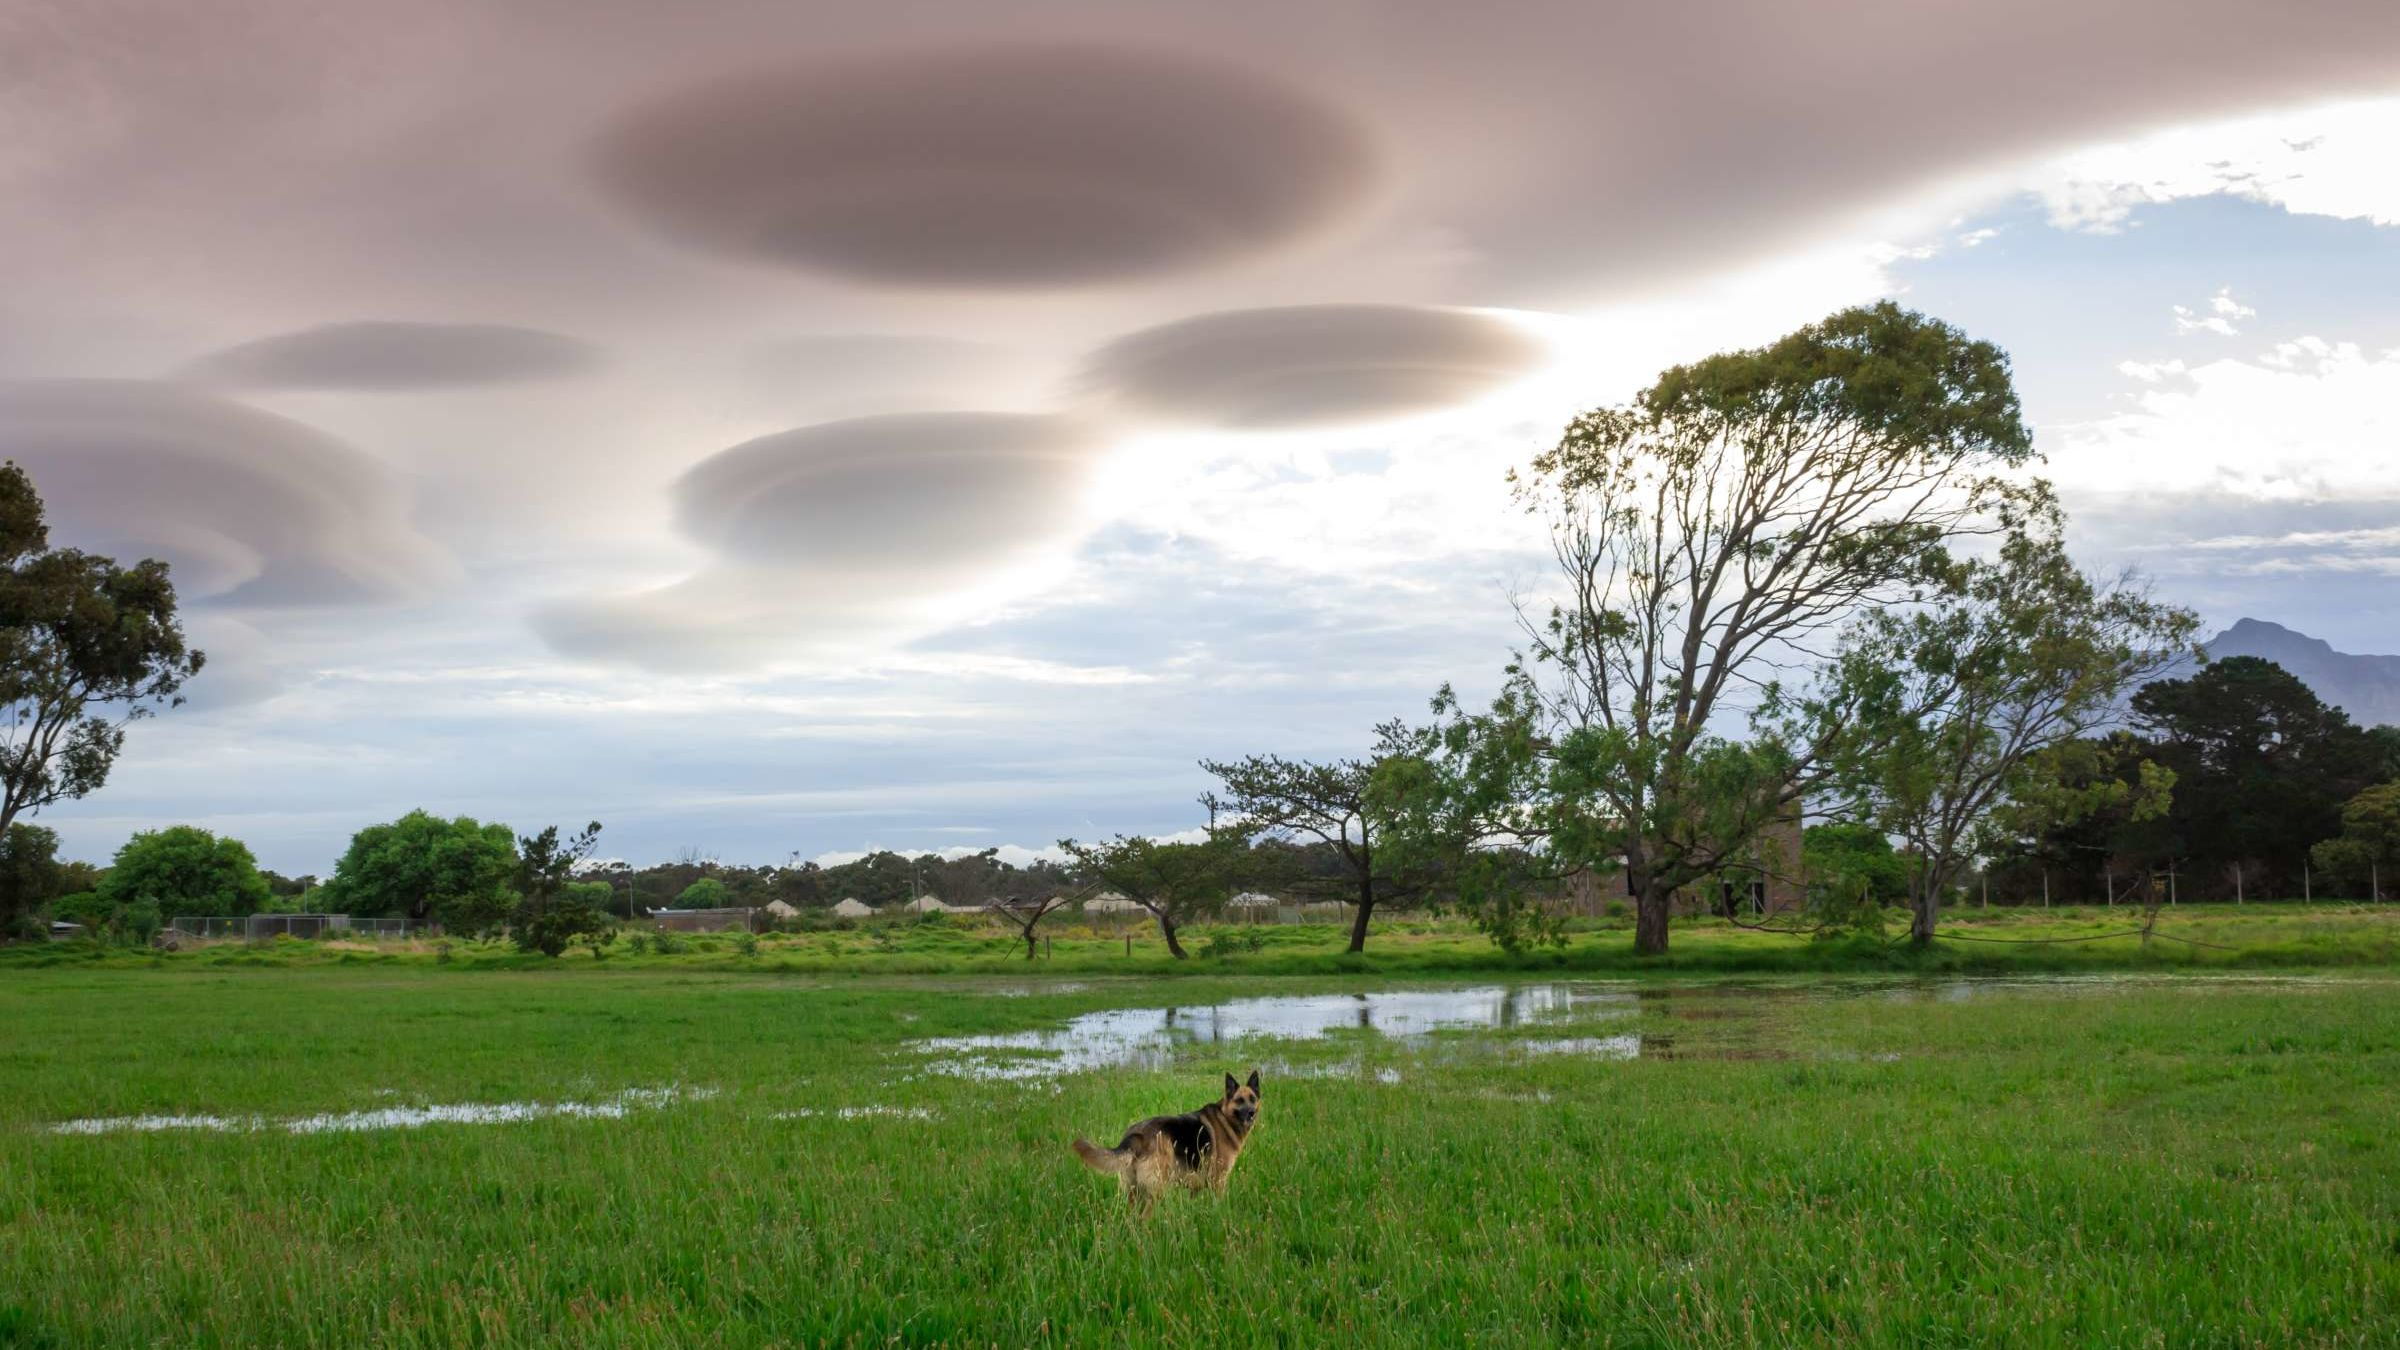 8 Strange Cloud Types and What They Mean